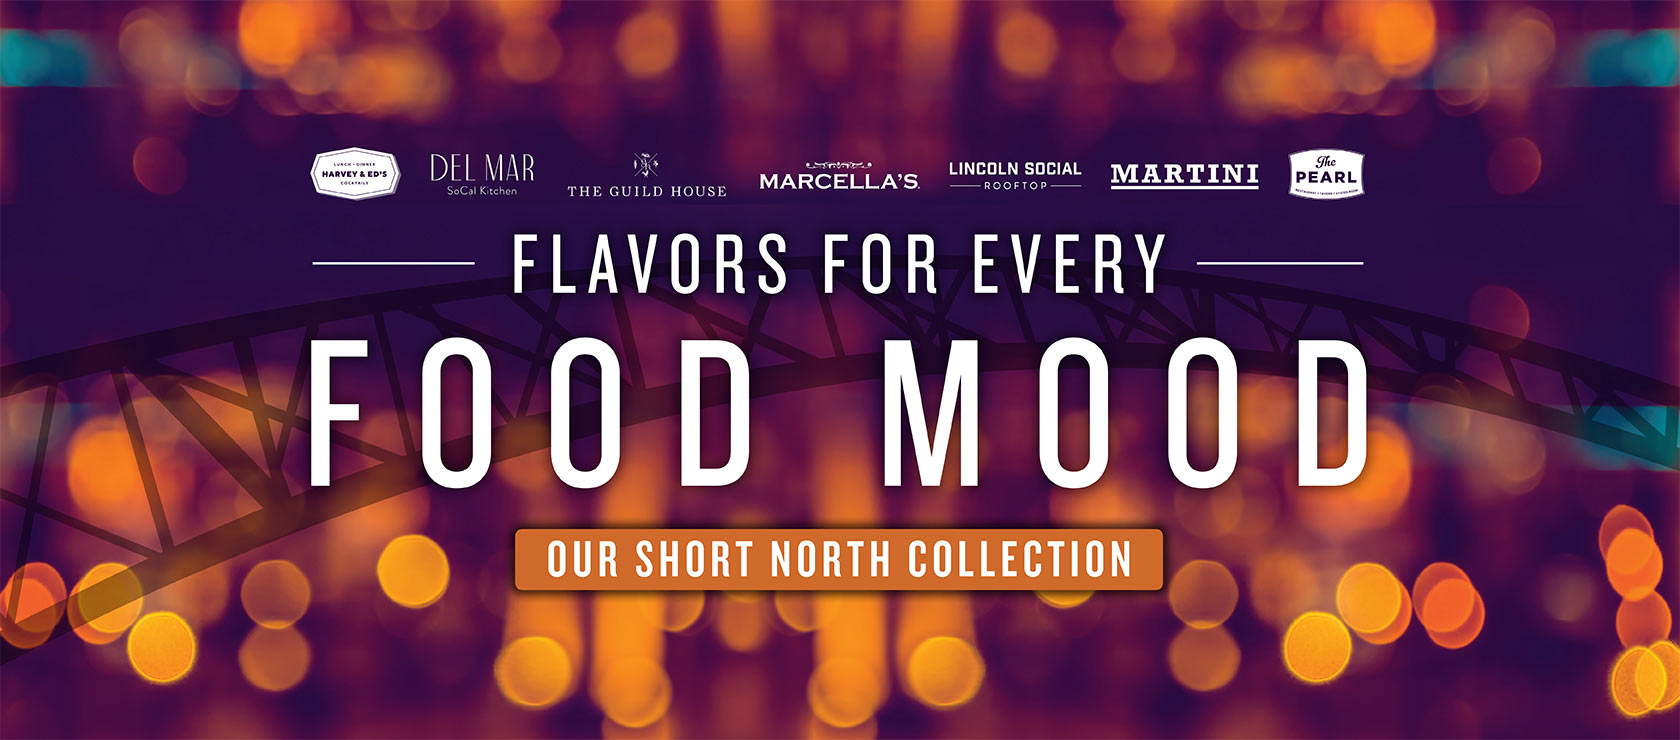 Flavors for Every Food Mood